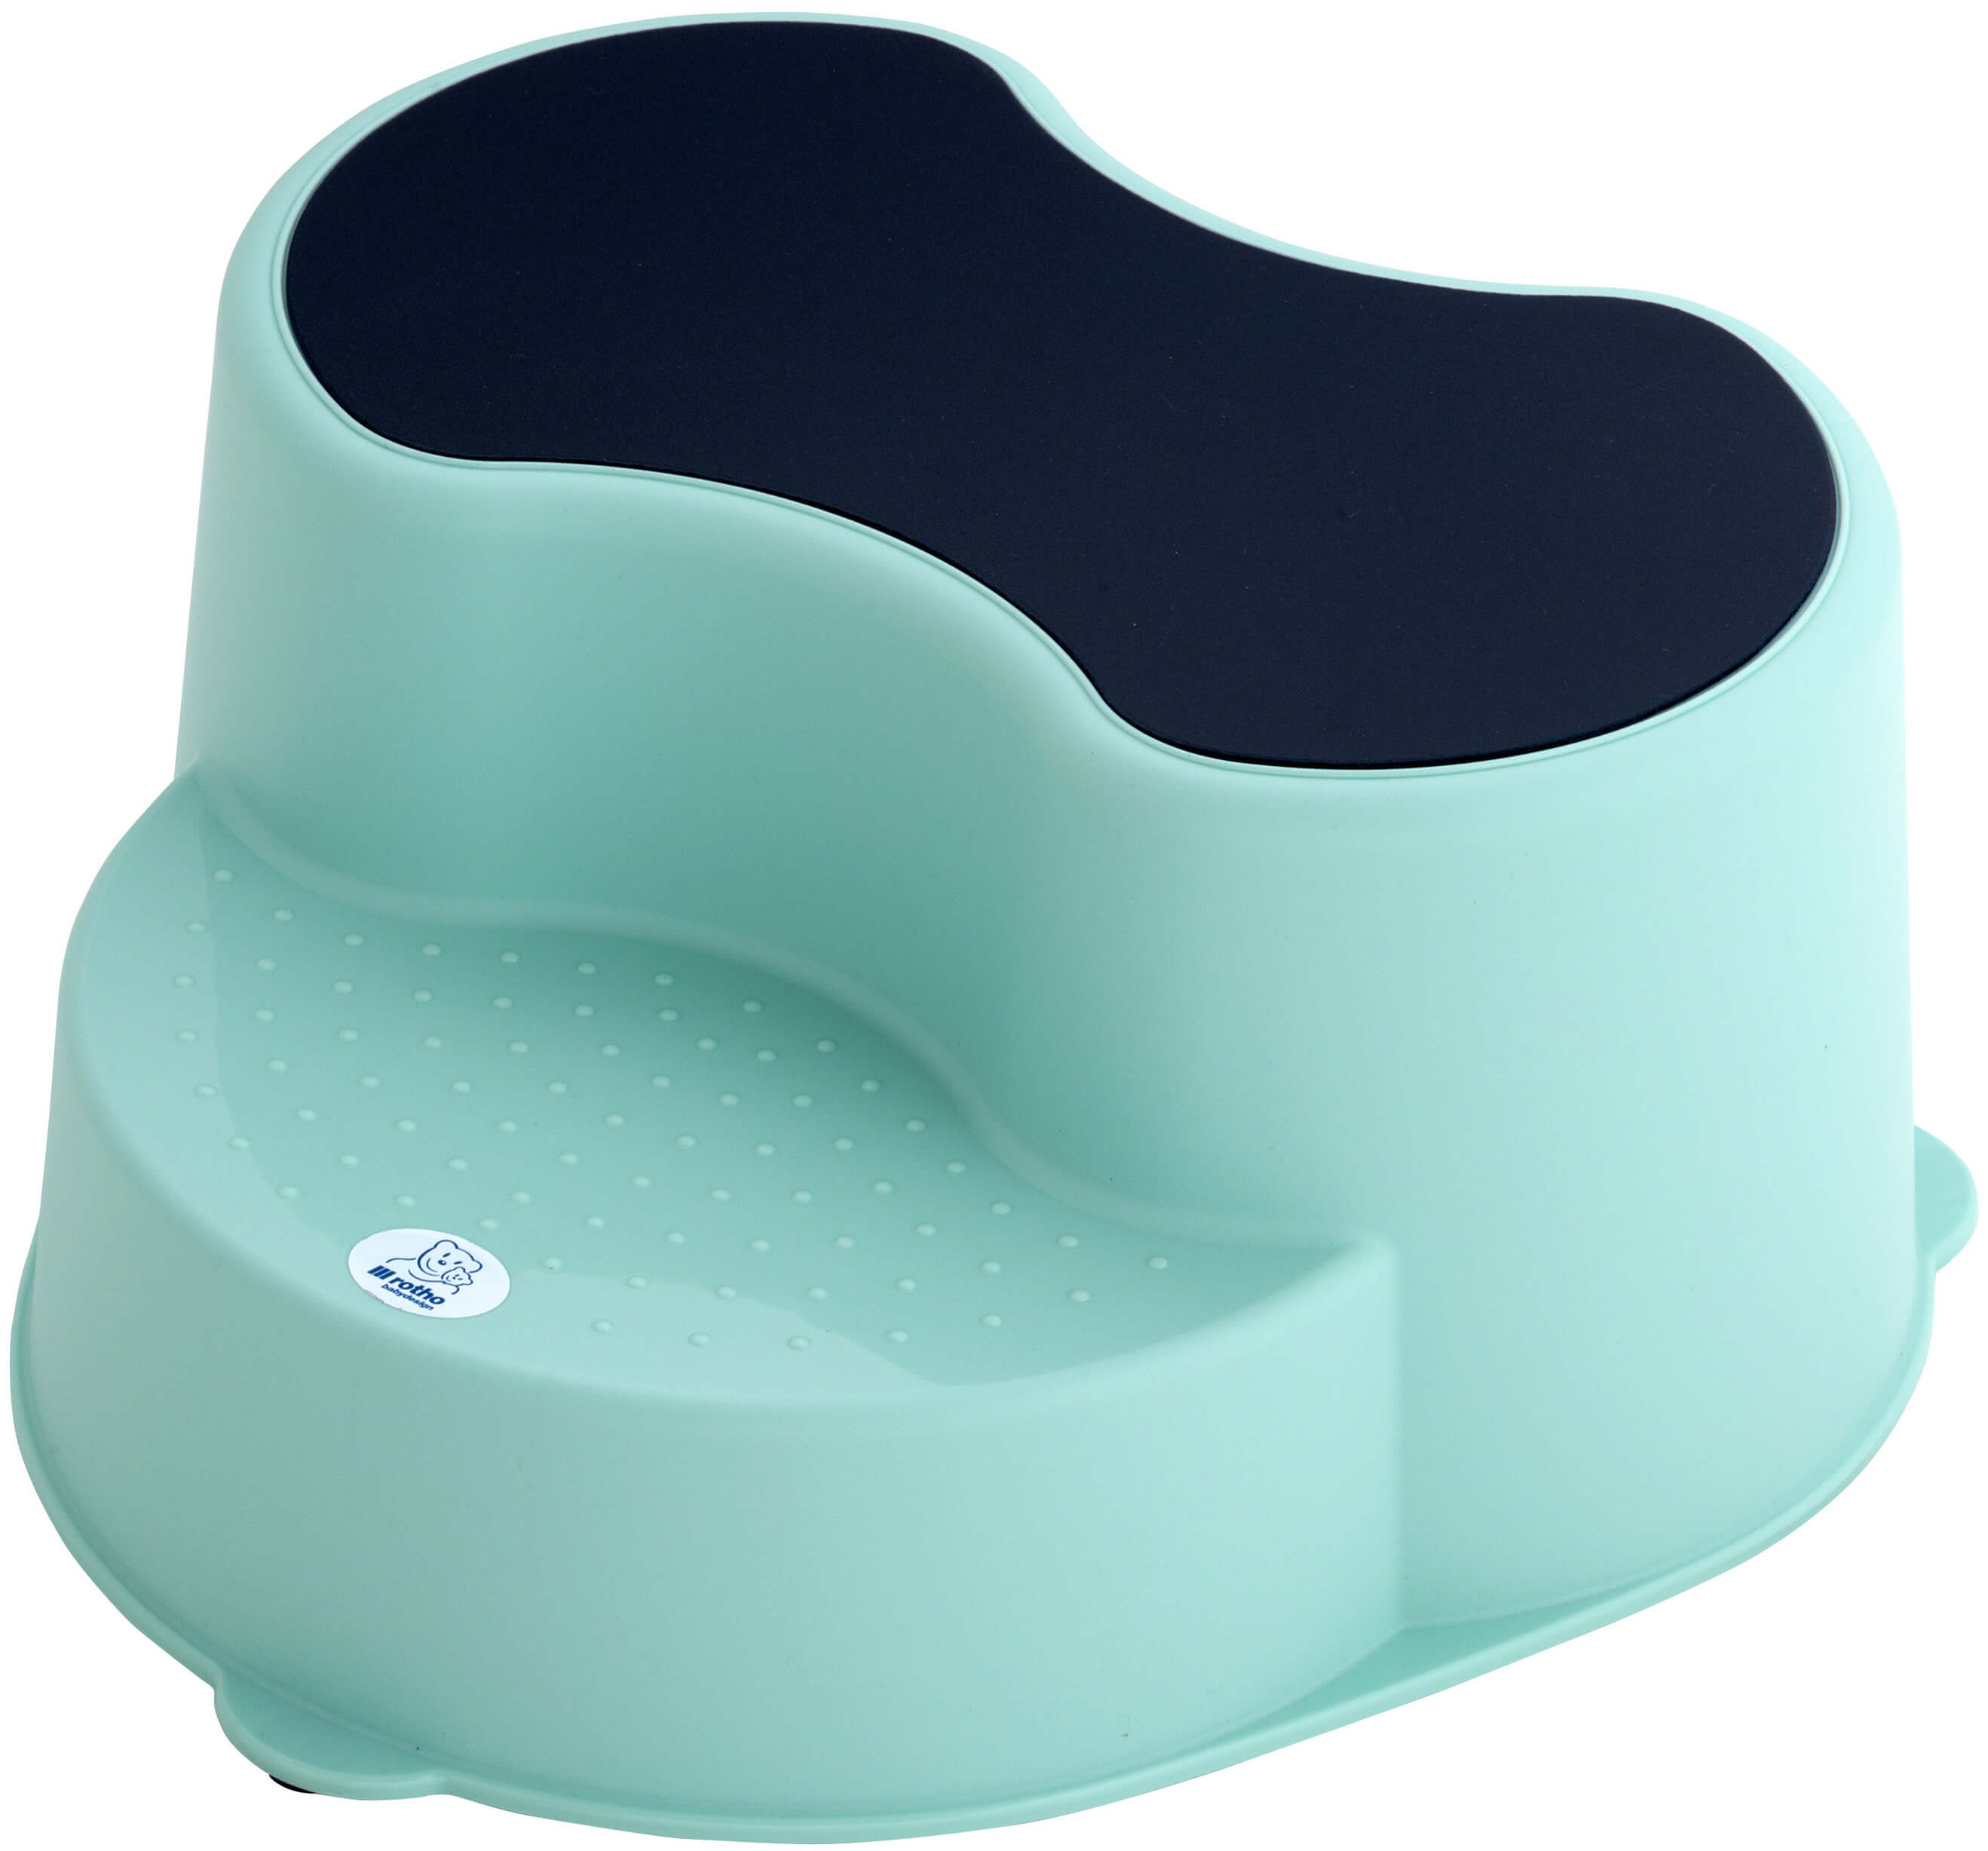 Excellent Rotho Top Kids Footstool 2 Step Swedish Green Onthecornerstone Fun Painted Chair Ideas Images Onthecornerstoneorg